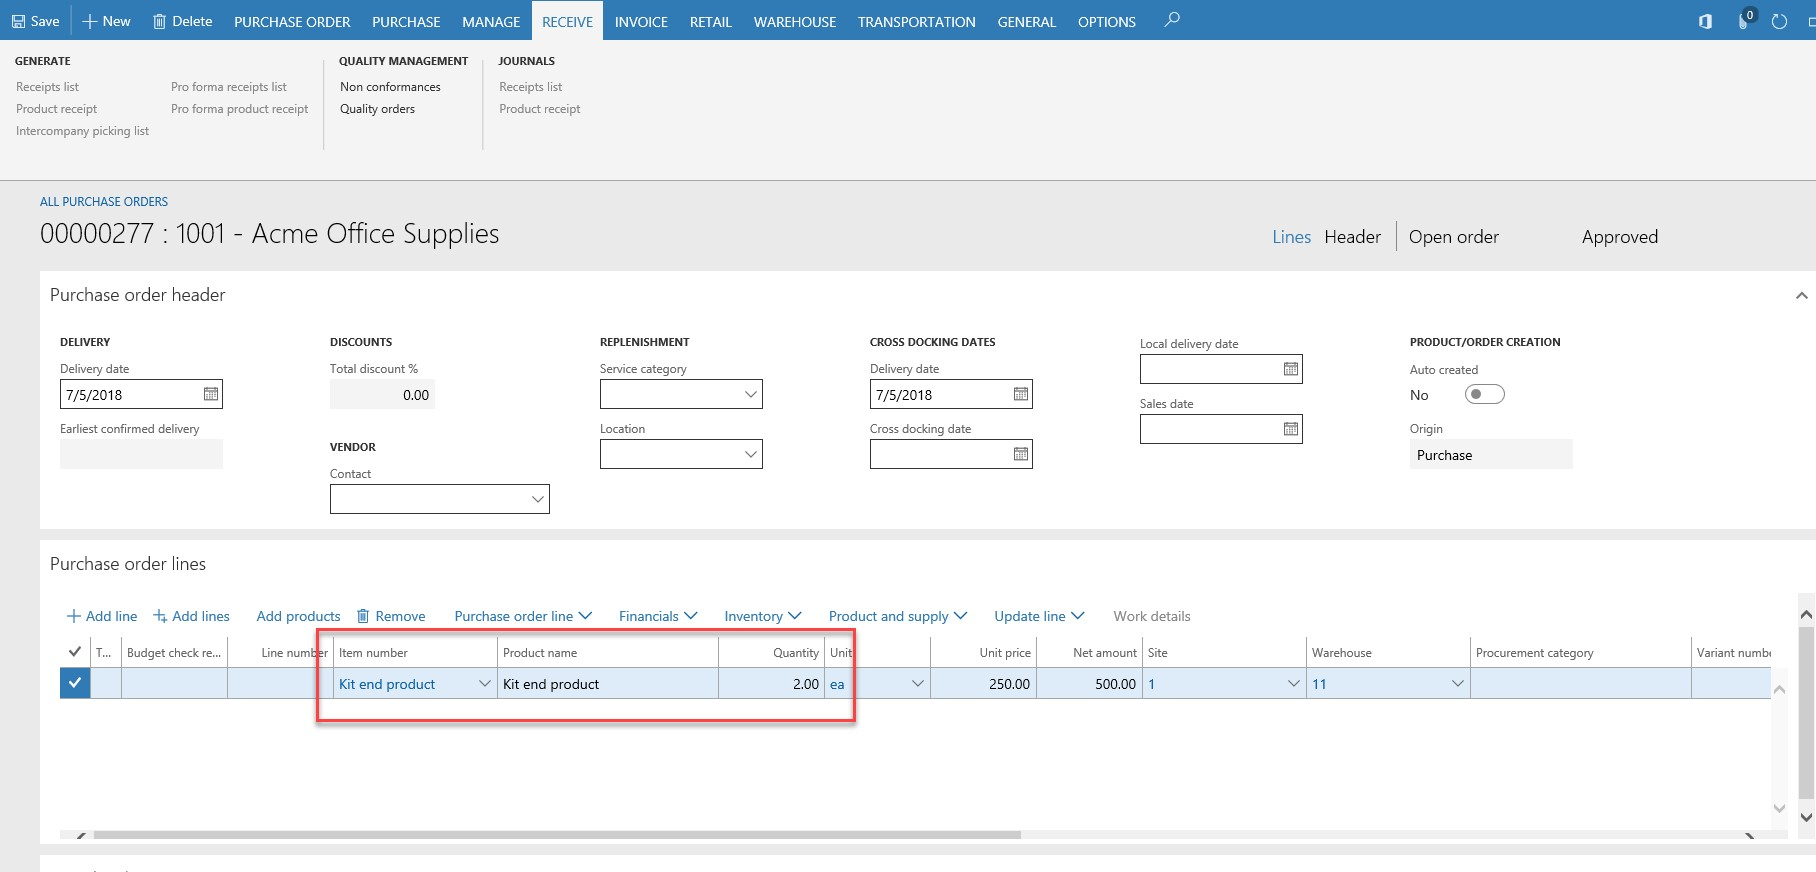 Bill of Materials as Kits in Dynamics 365 for Finance